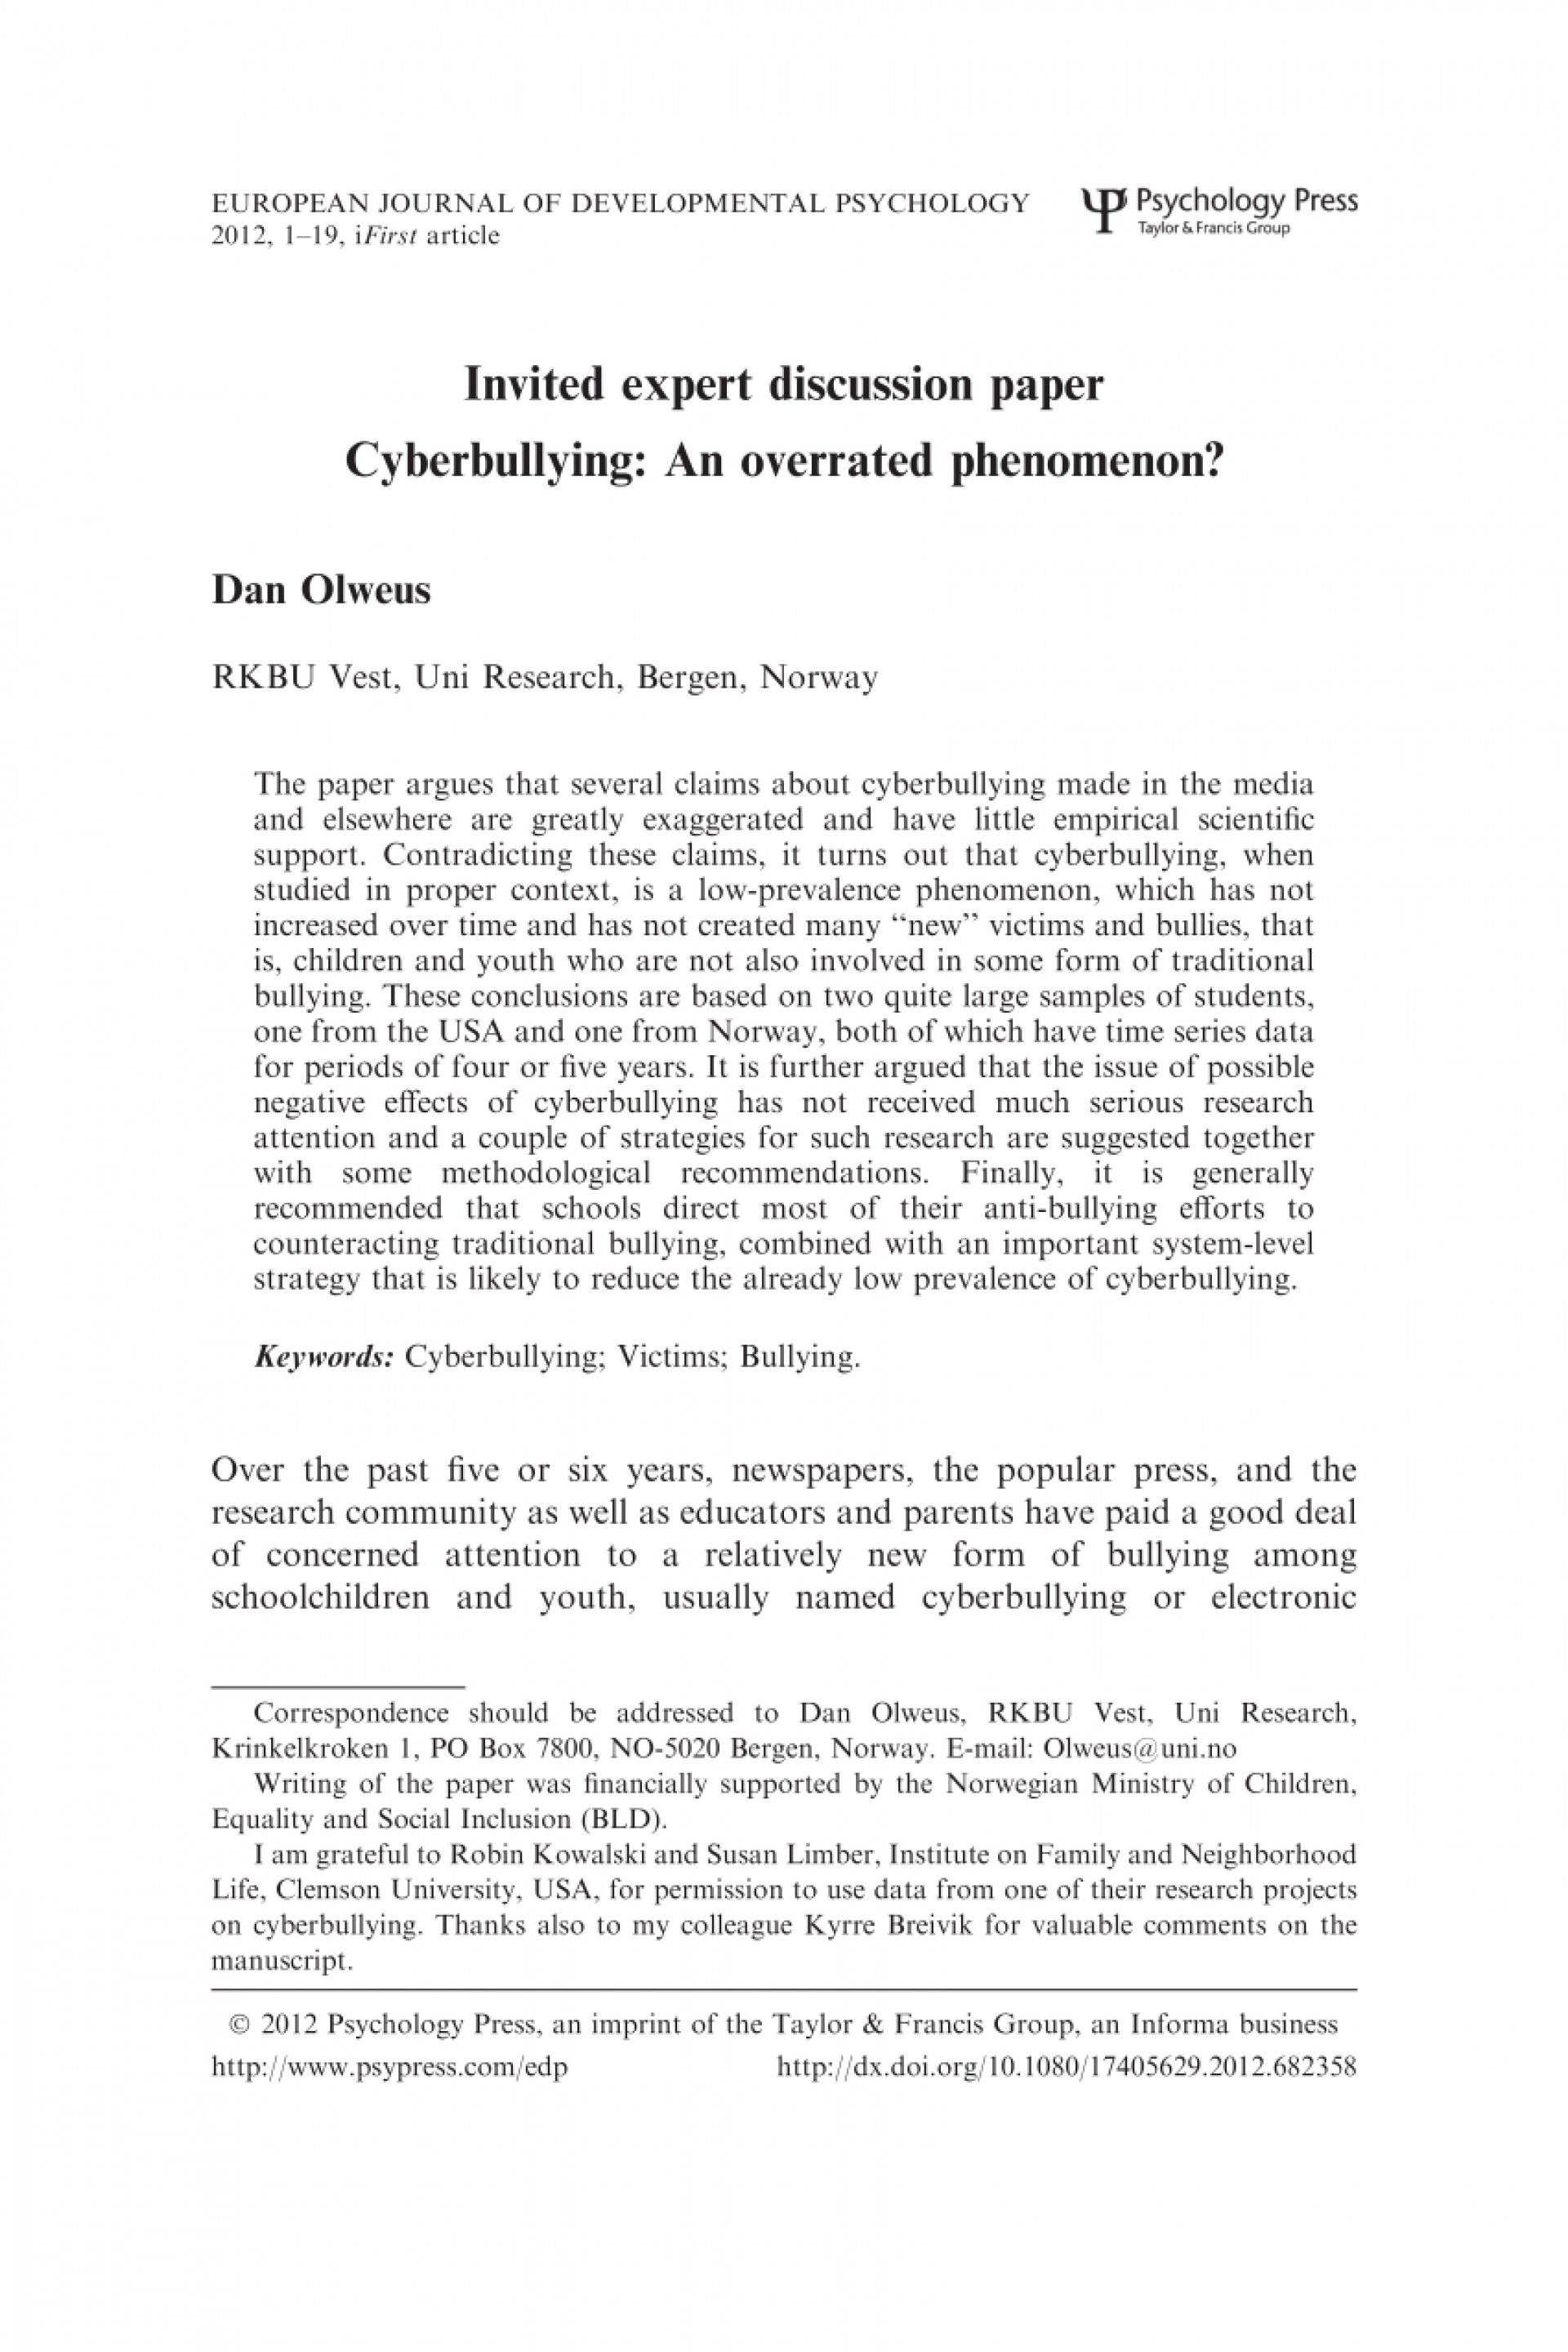 008 Researchs On Cyber Bullying Largepreview Dreaded Research Papers Paper Proposal Articles Cyberbullying About In The Philippines Pdf 1920